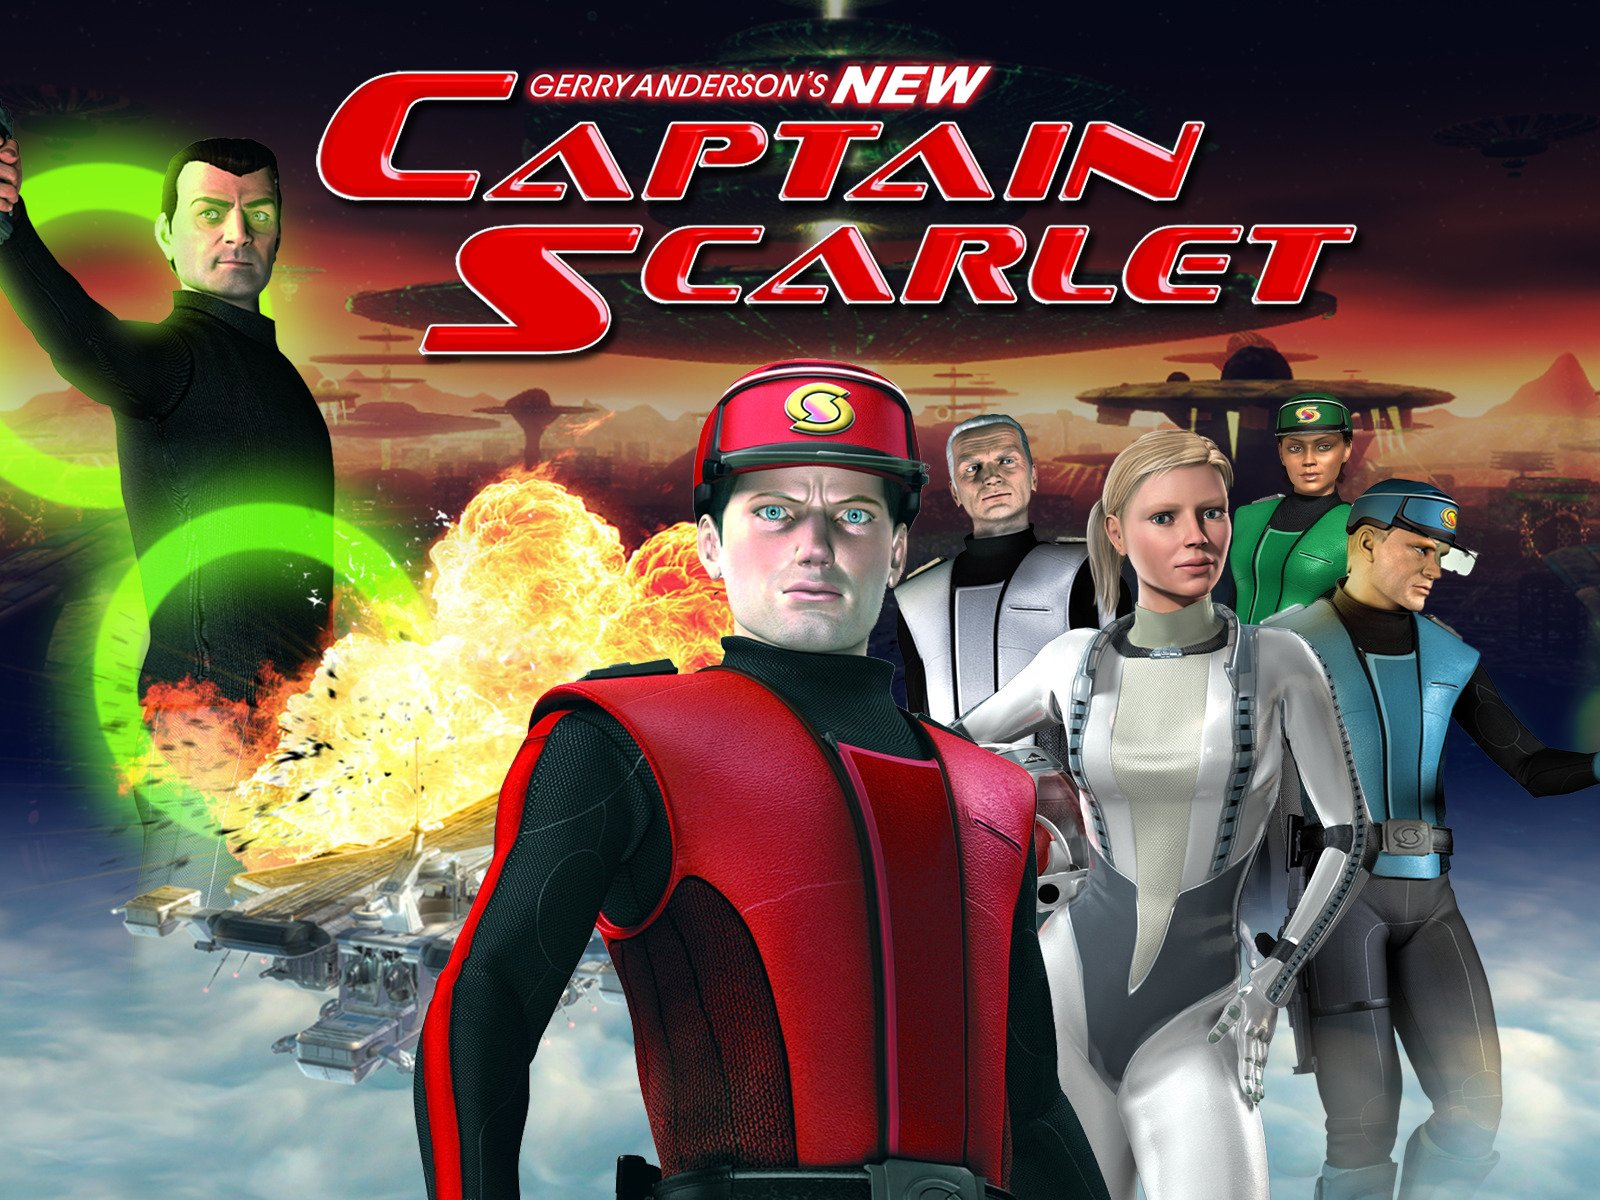 Gerry Anderson's CGI reimagining of Captain Scarlet captivates a whole new audience.